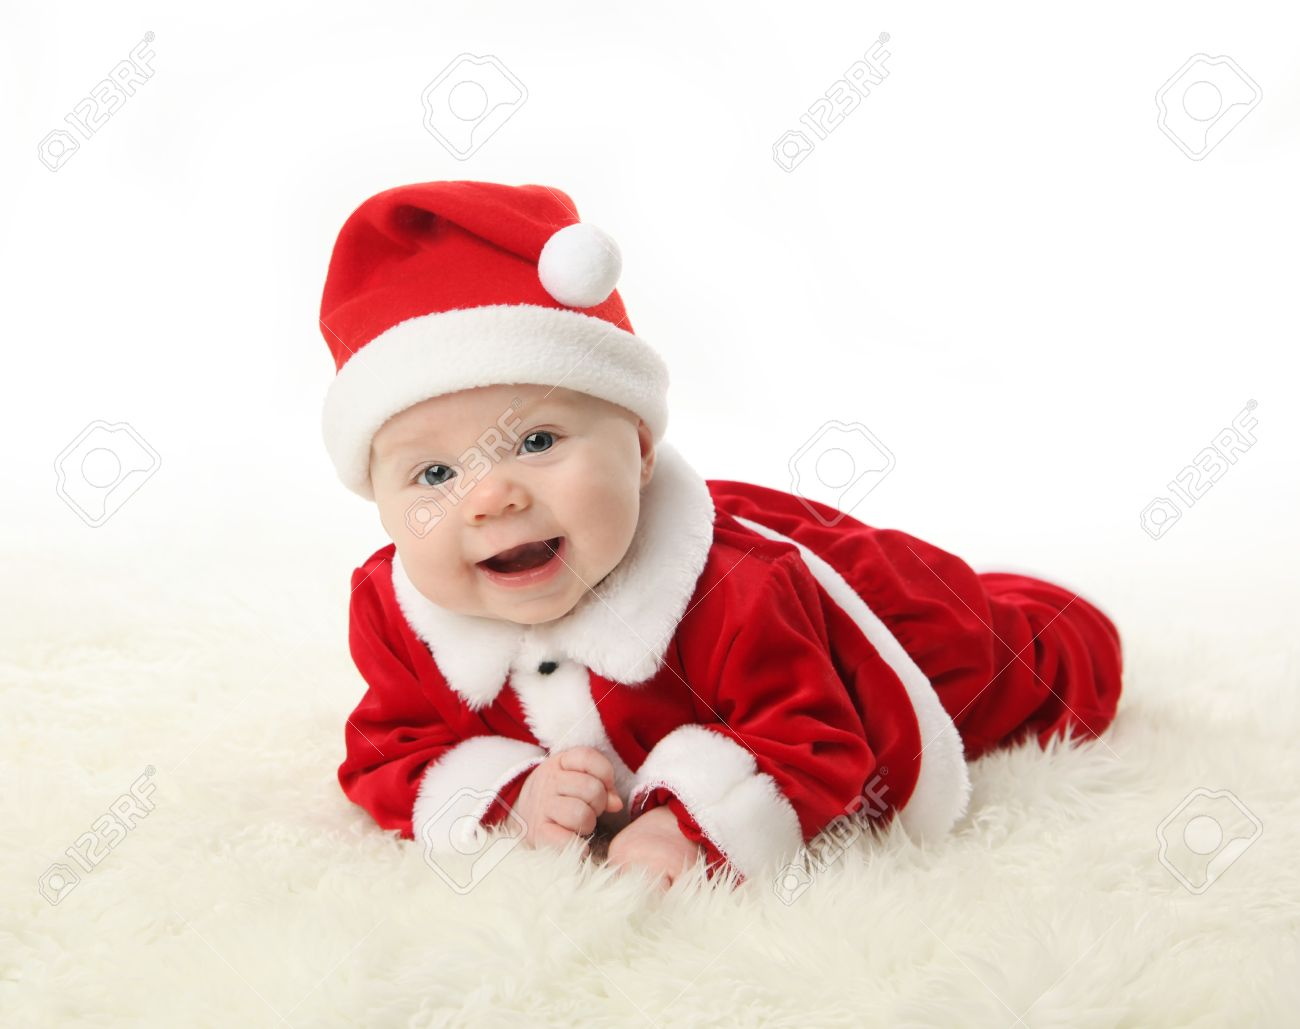 6c3532ff9d5 Happy smilng baby lying on tummy wearing a red and white Christmas Santa hat  and suit